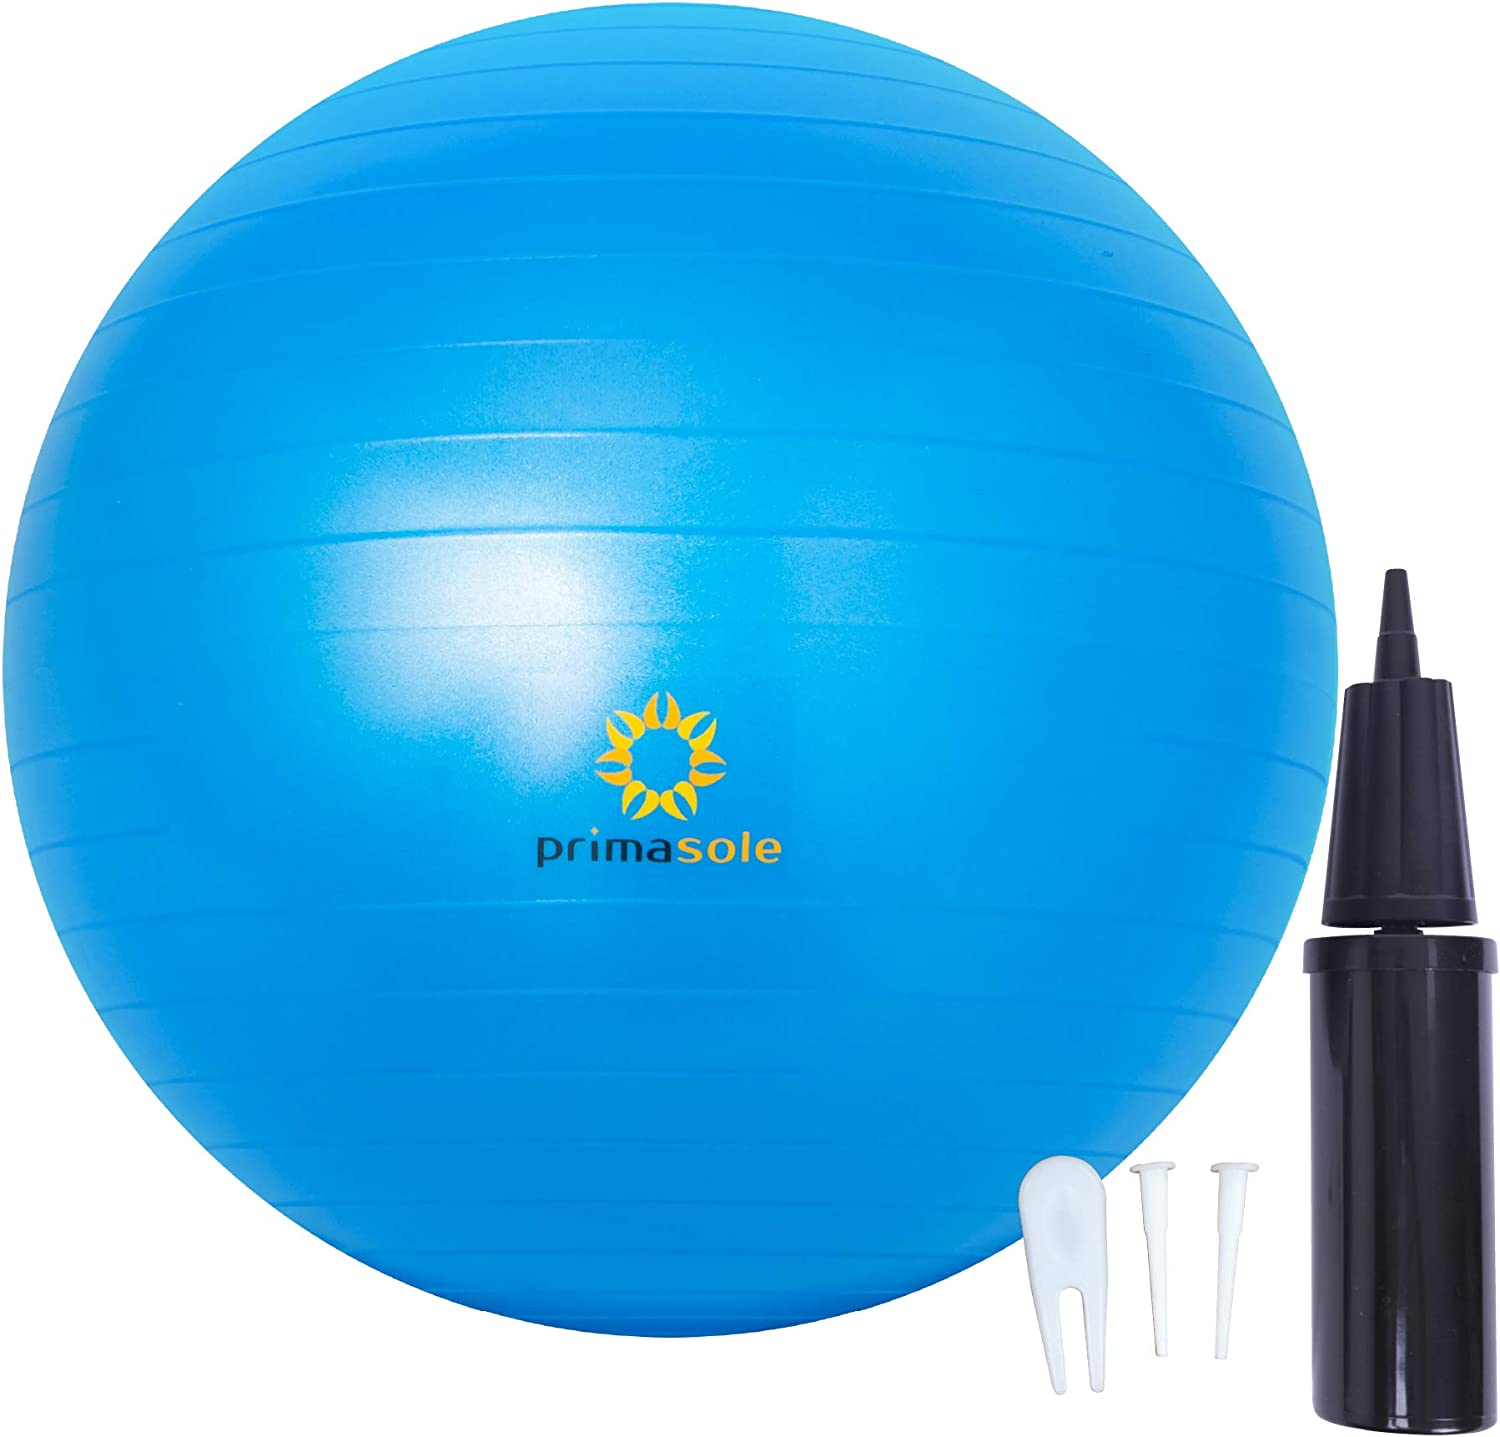 Primasole Exercise Ball (29.5 inch) for Balance, Stability, Fitness, Workout, Yoga, Pilate, Chair Ball at Home, Offce & Gym with Inflator Pump. Balance Ball for Women & Men (Blue) PSS91NH067A